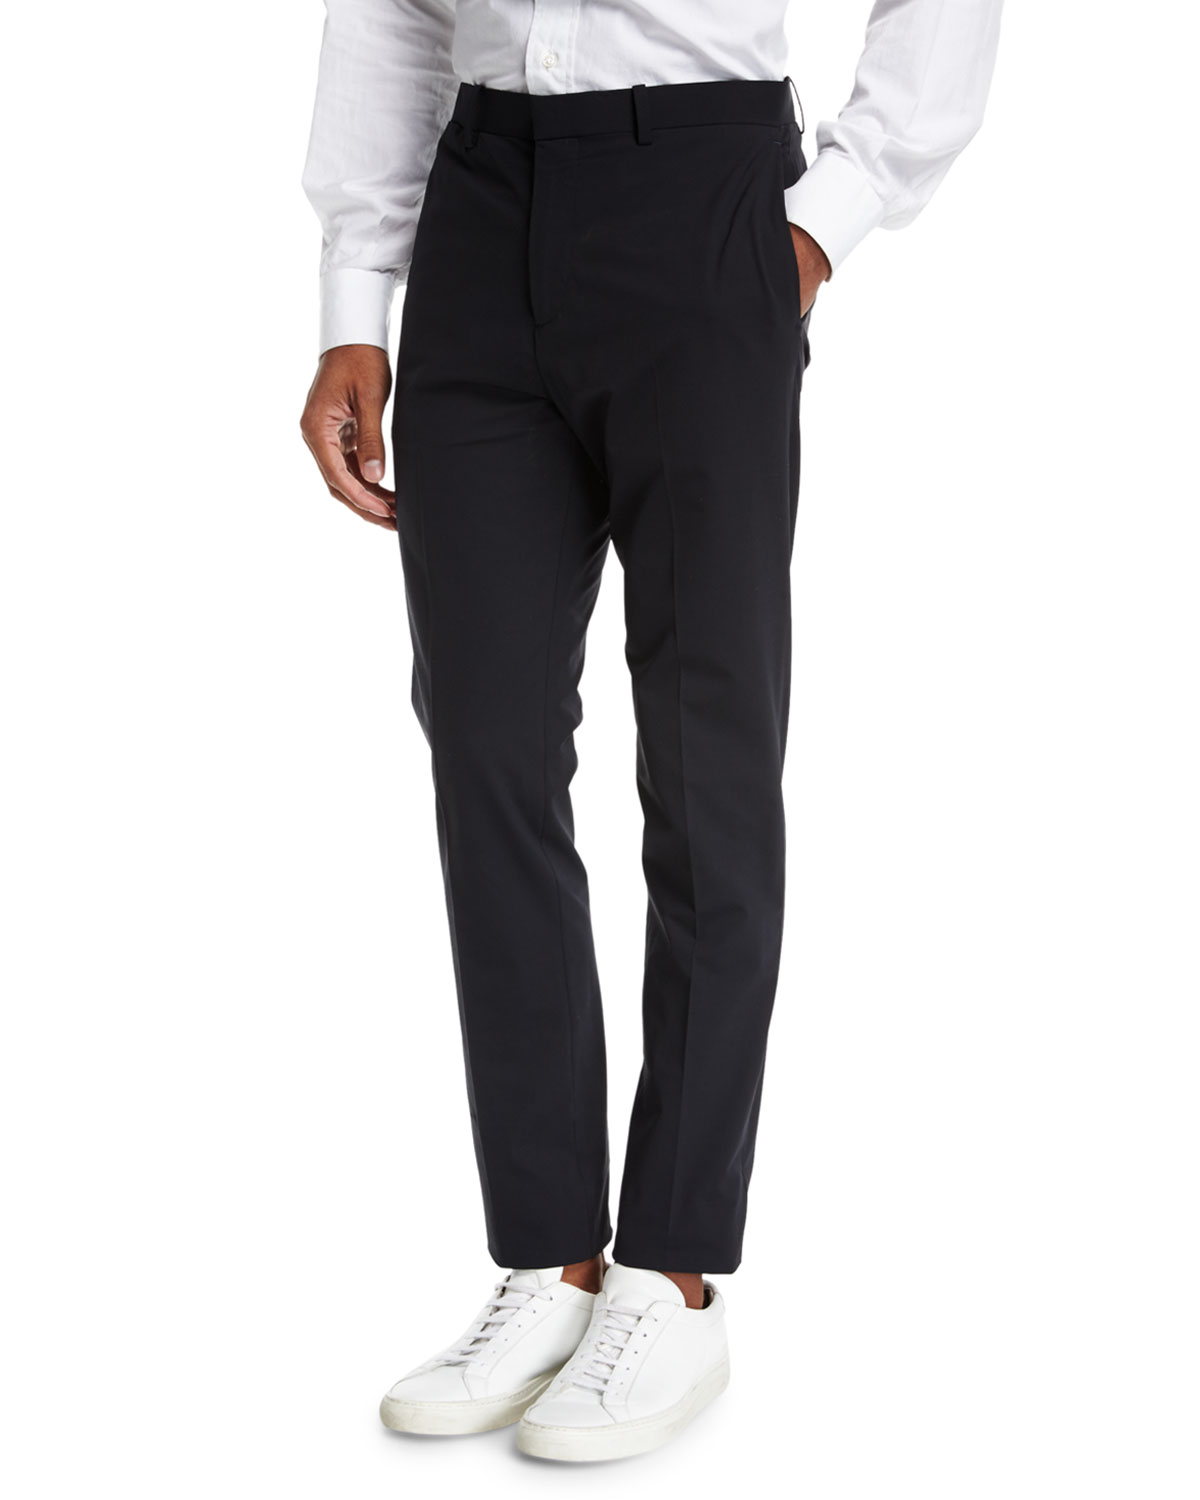 Tailored Wool Semi-Tech Pants